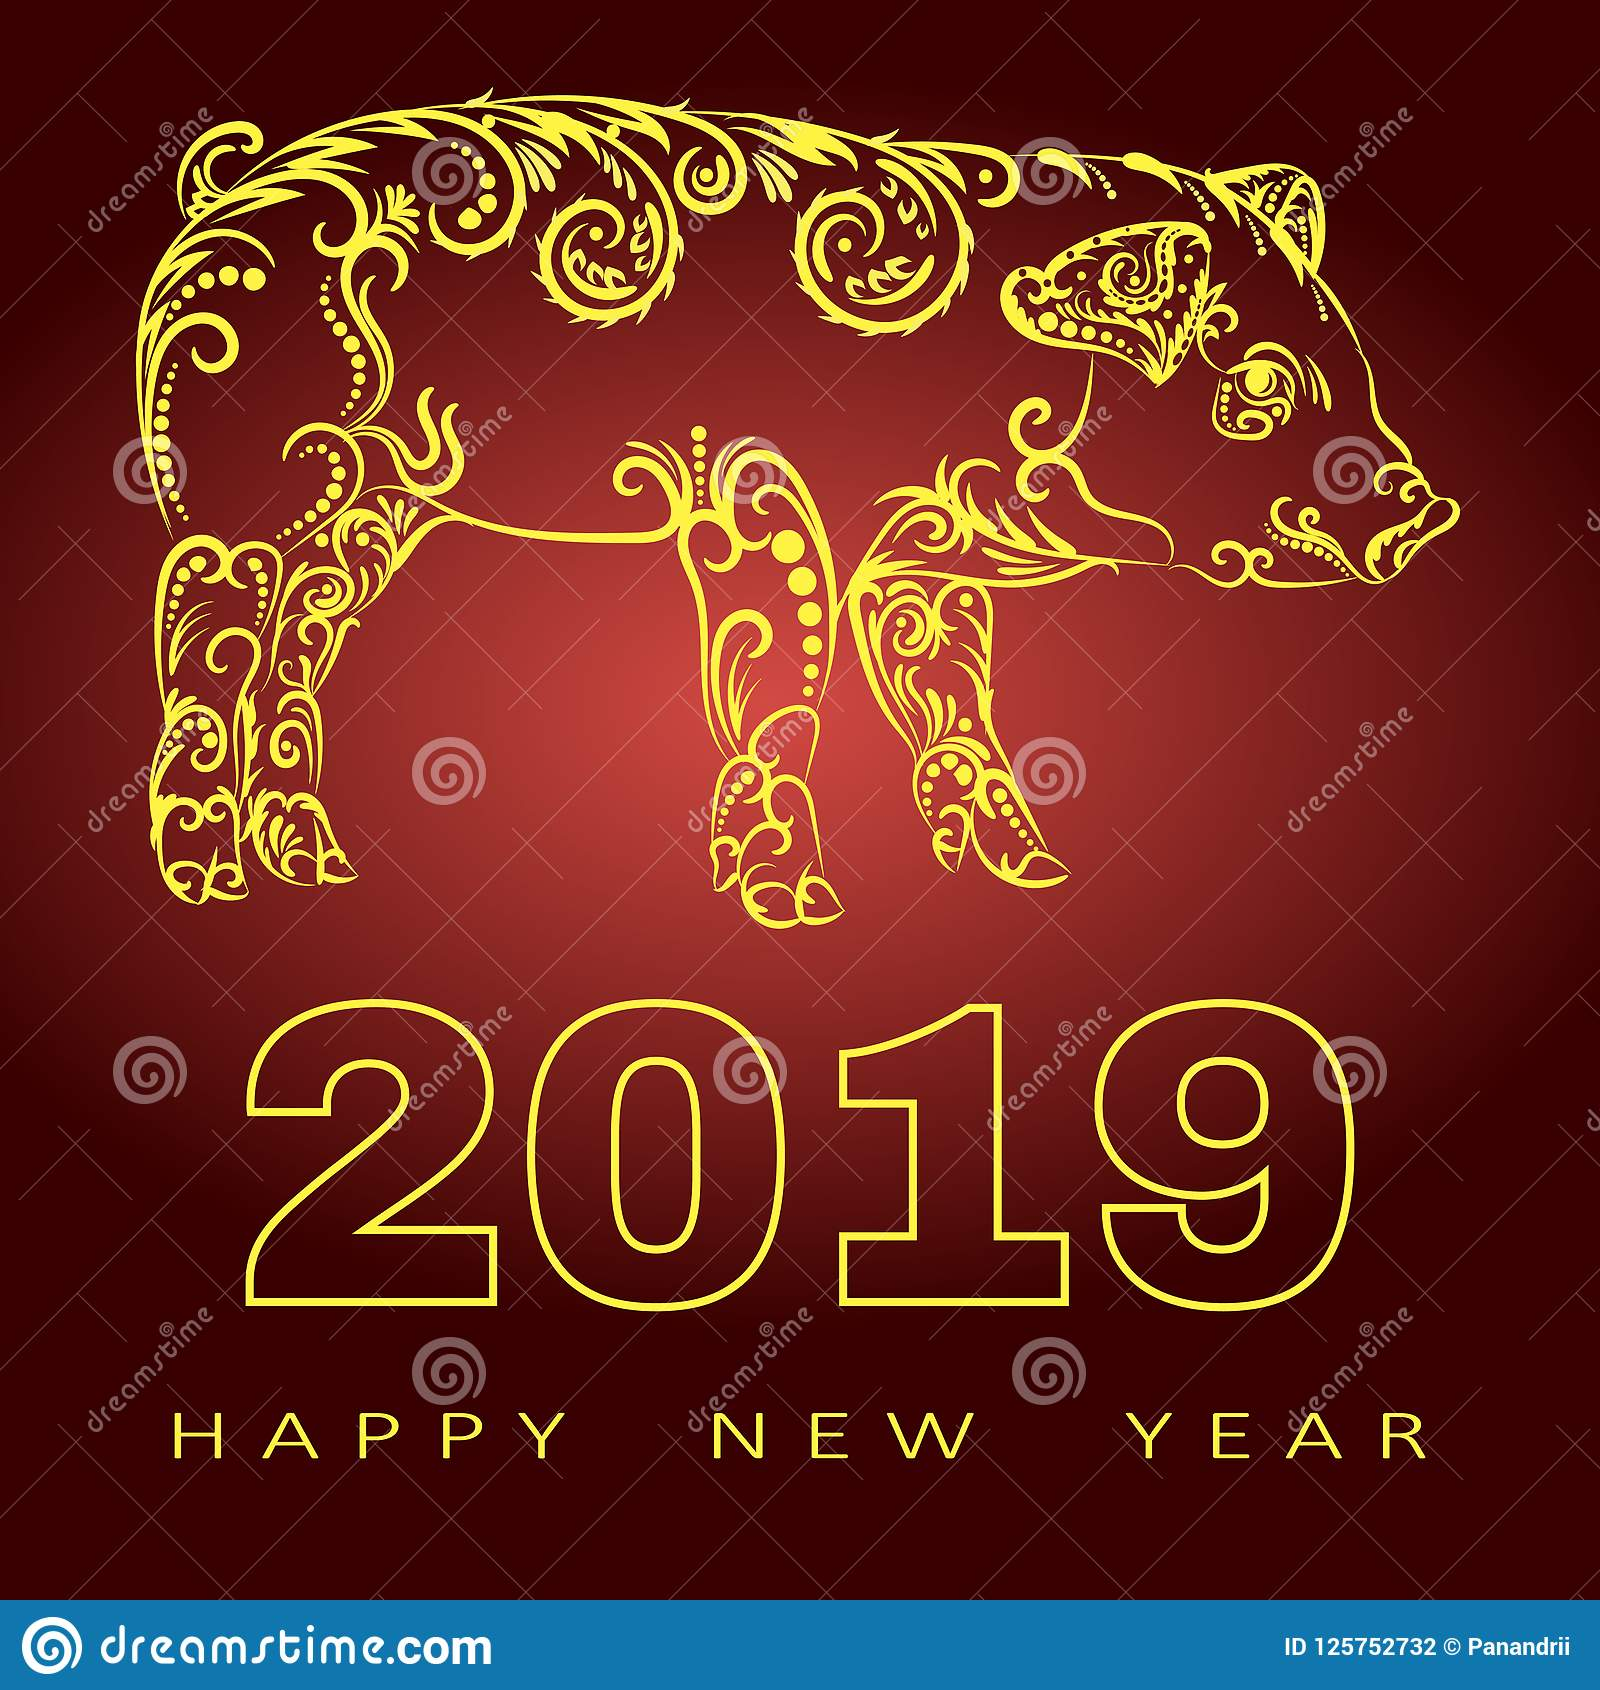 happy chinese new year 2019 card with gold pig zodiac gold paper cut art and